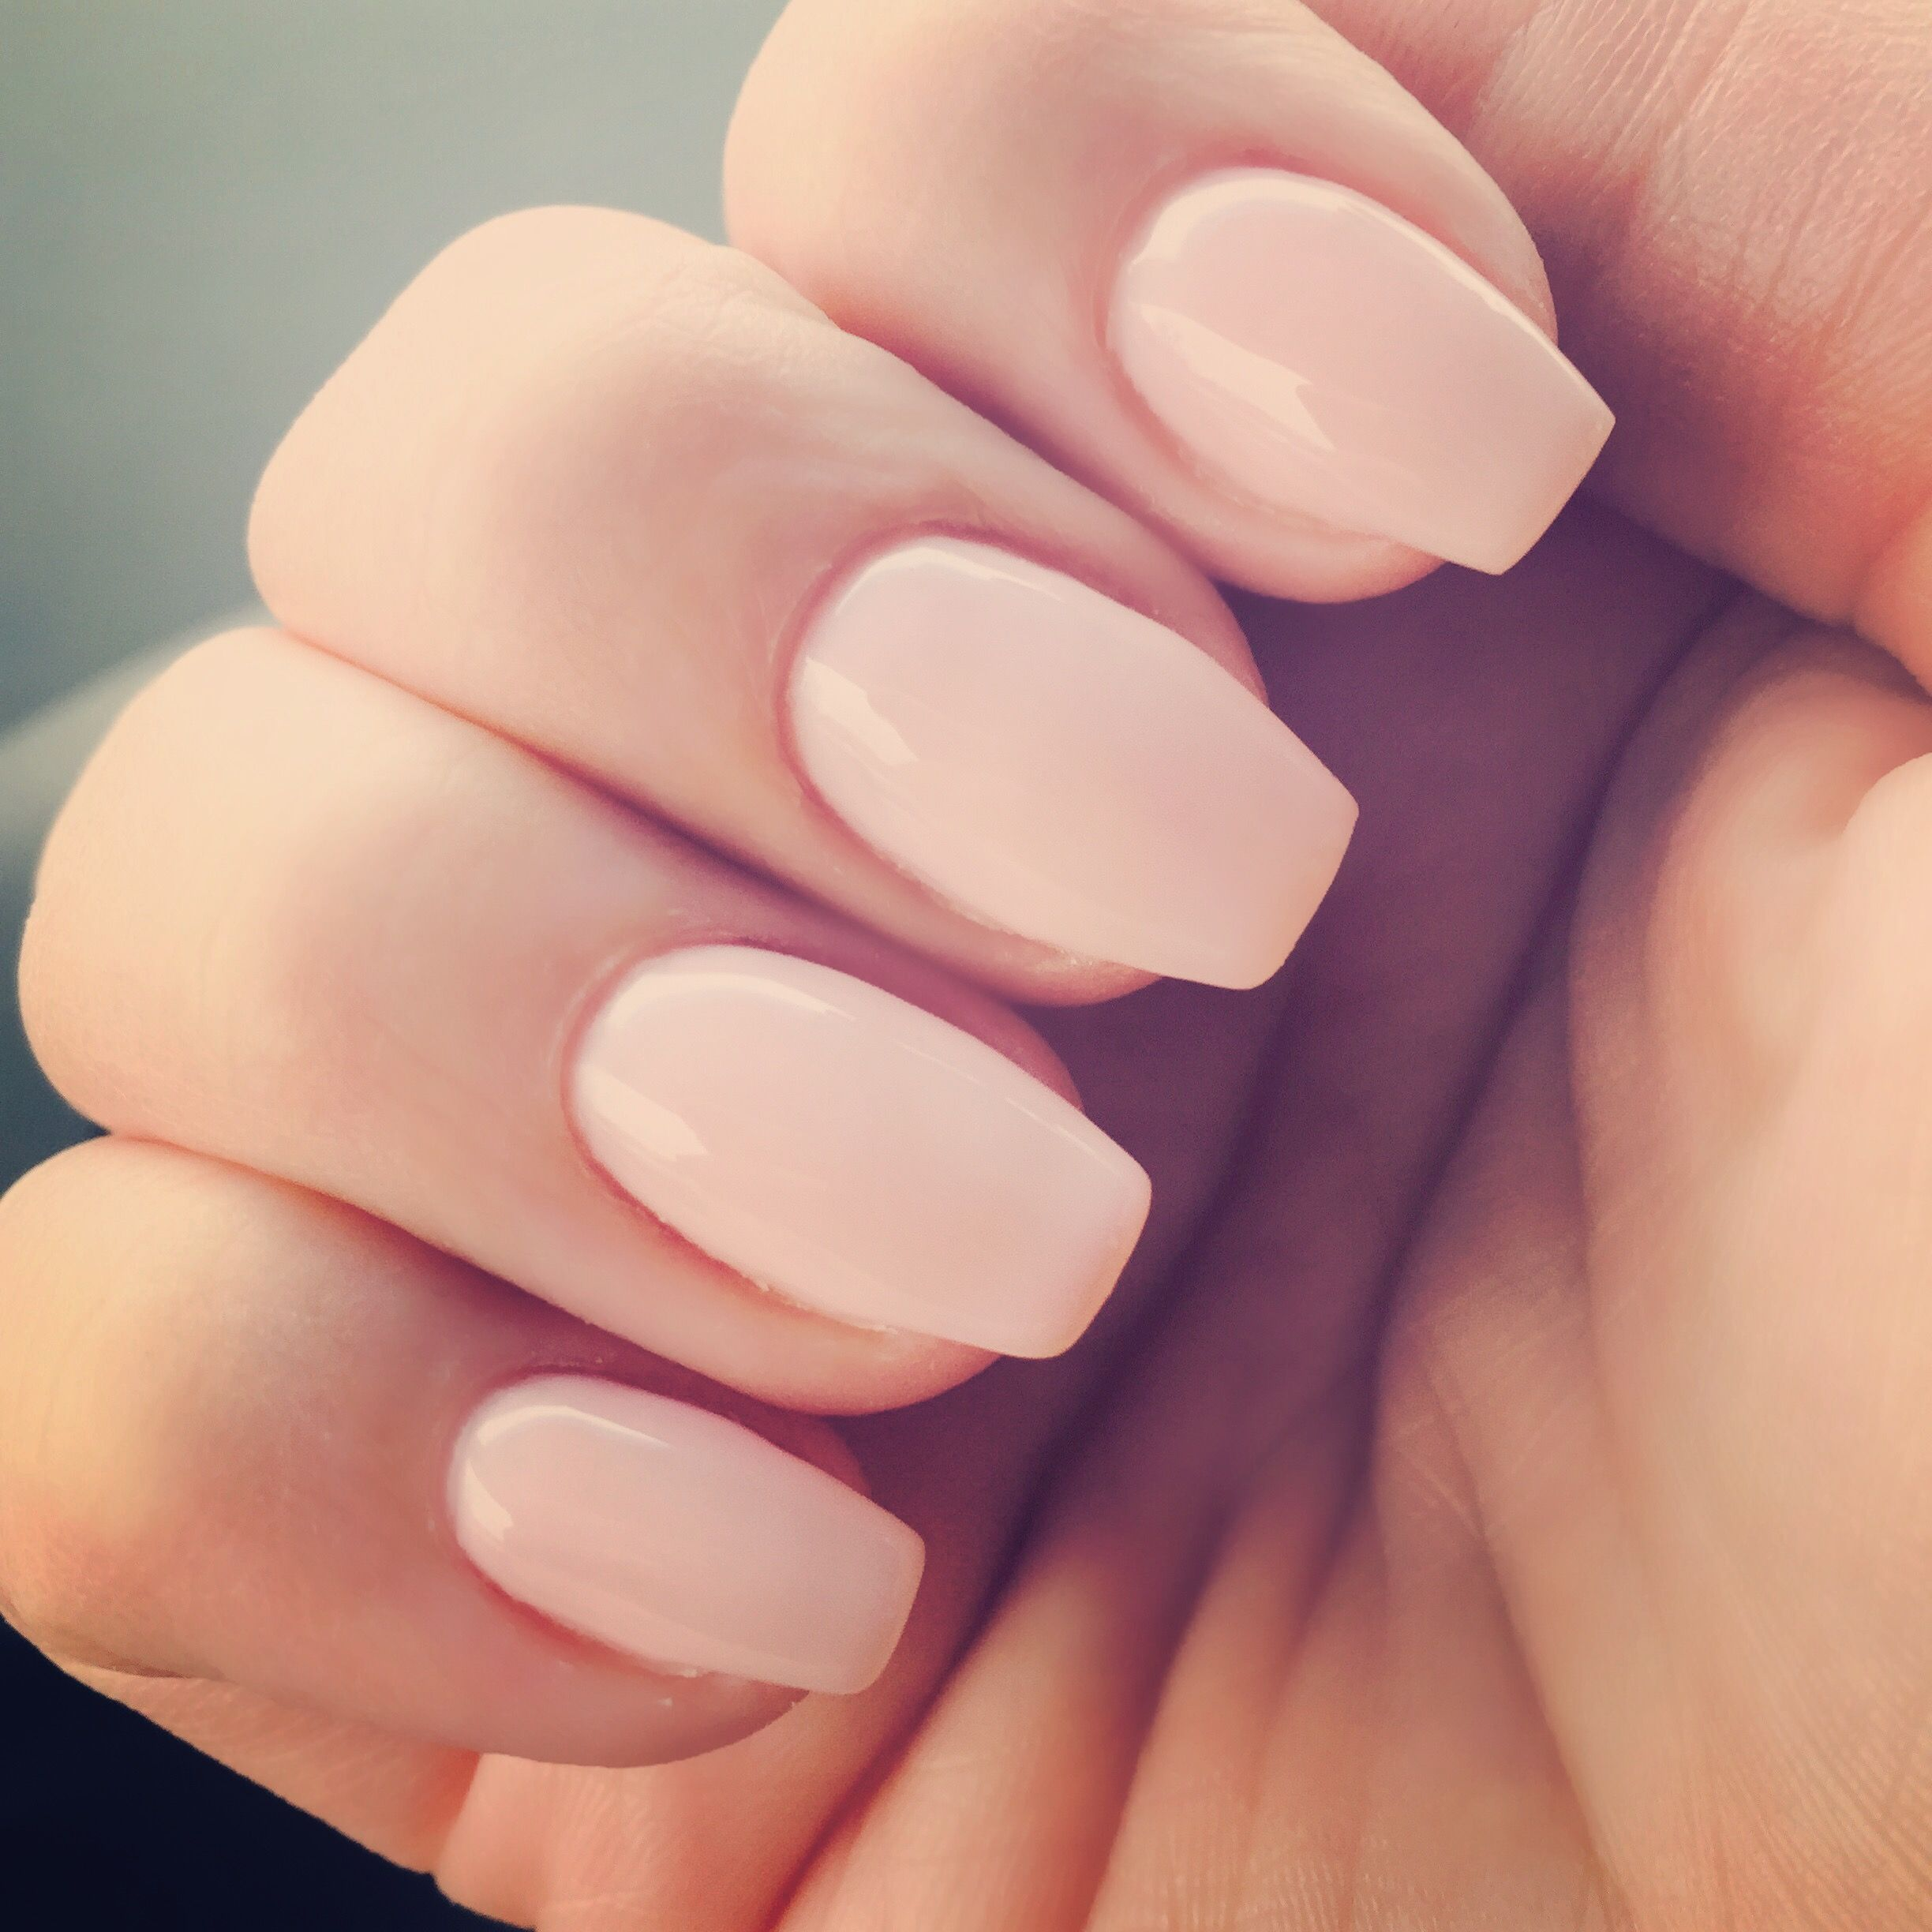 55 Short Acrylics To Make Your Nails Look More Beautiful And Attractive Bezove Nehty Vzory Na Akrylove Nehty Nehet